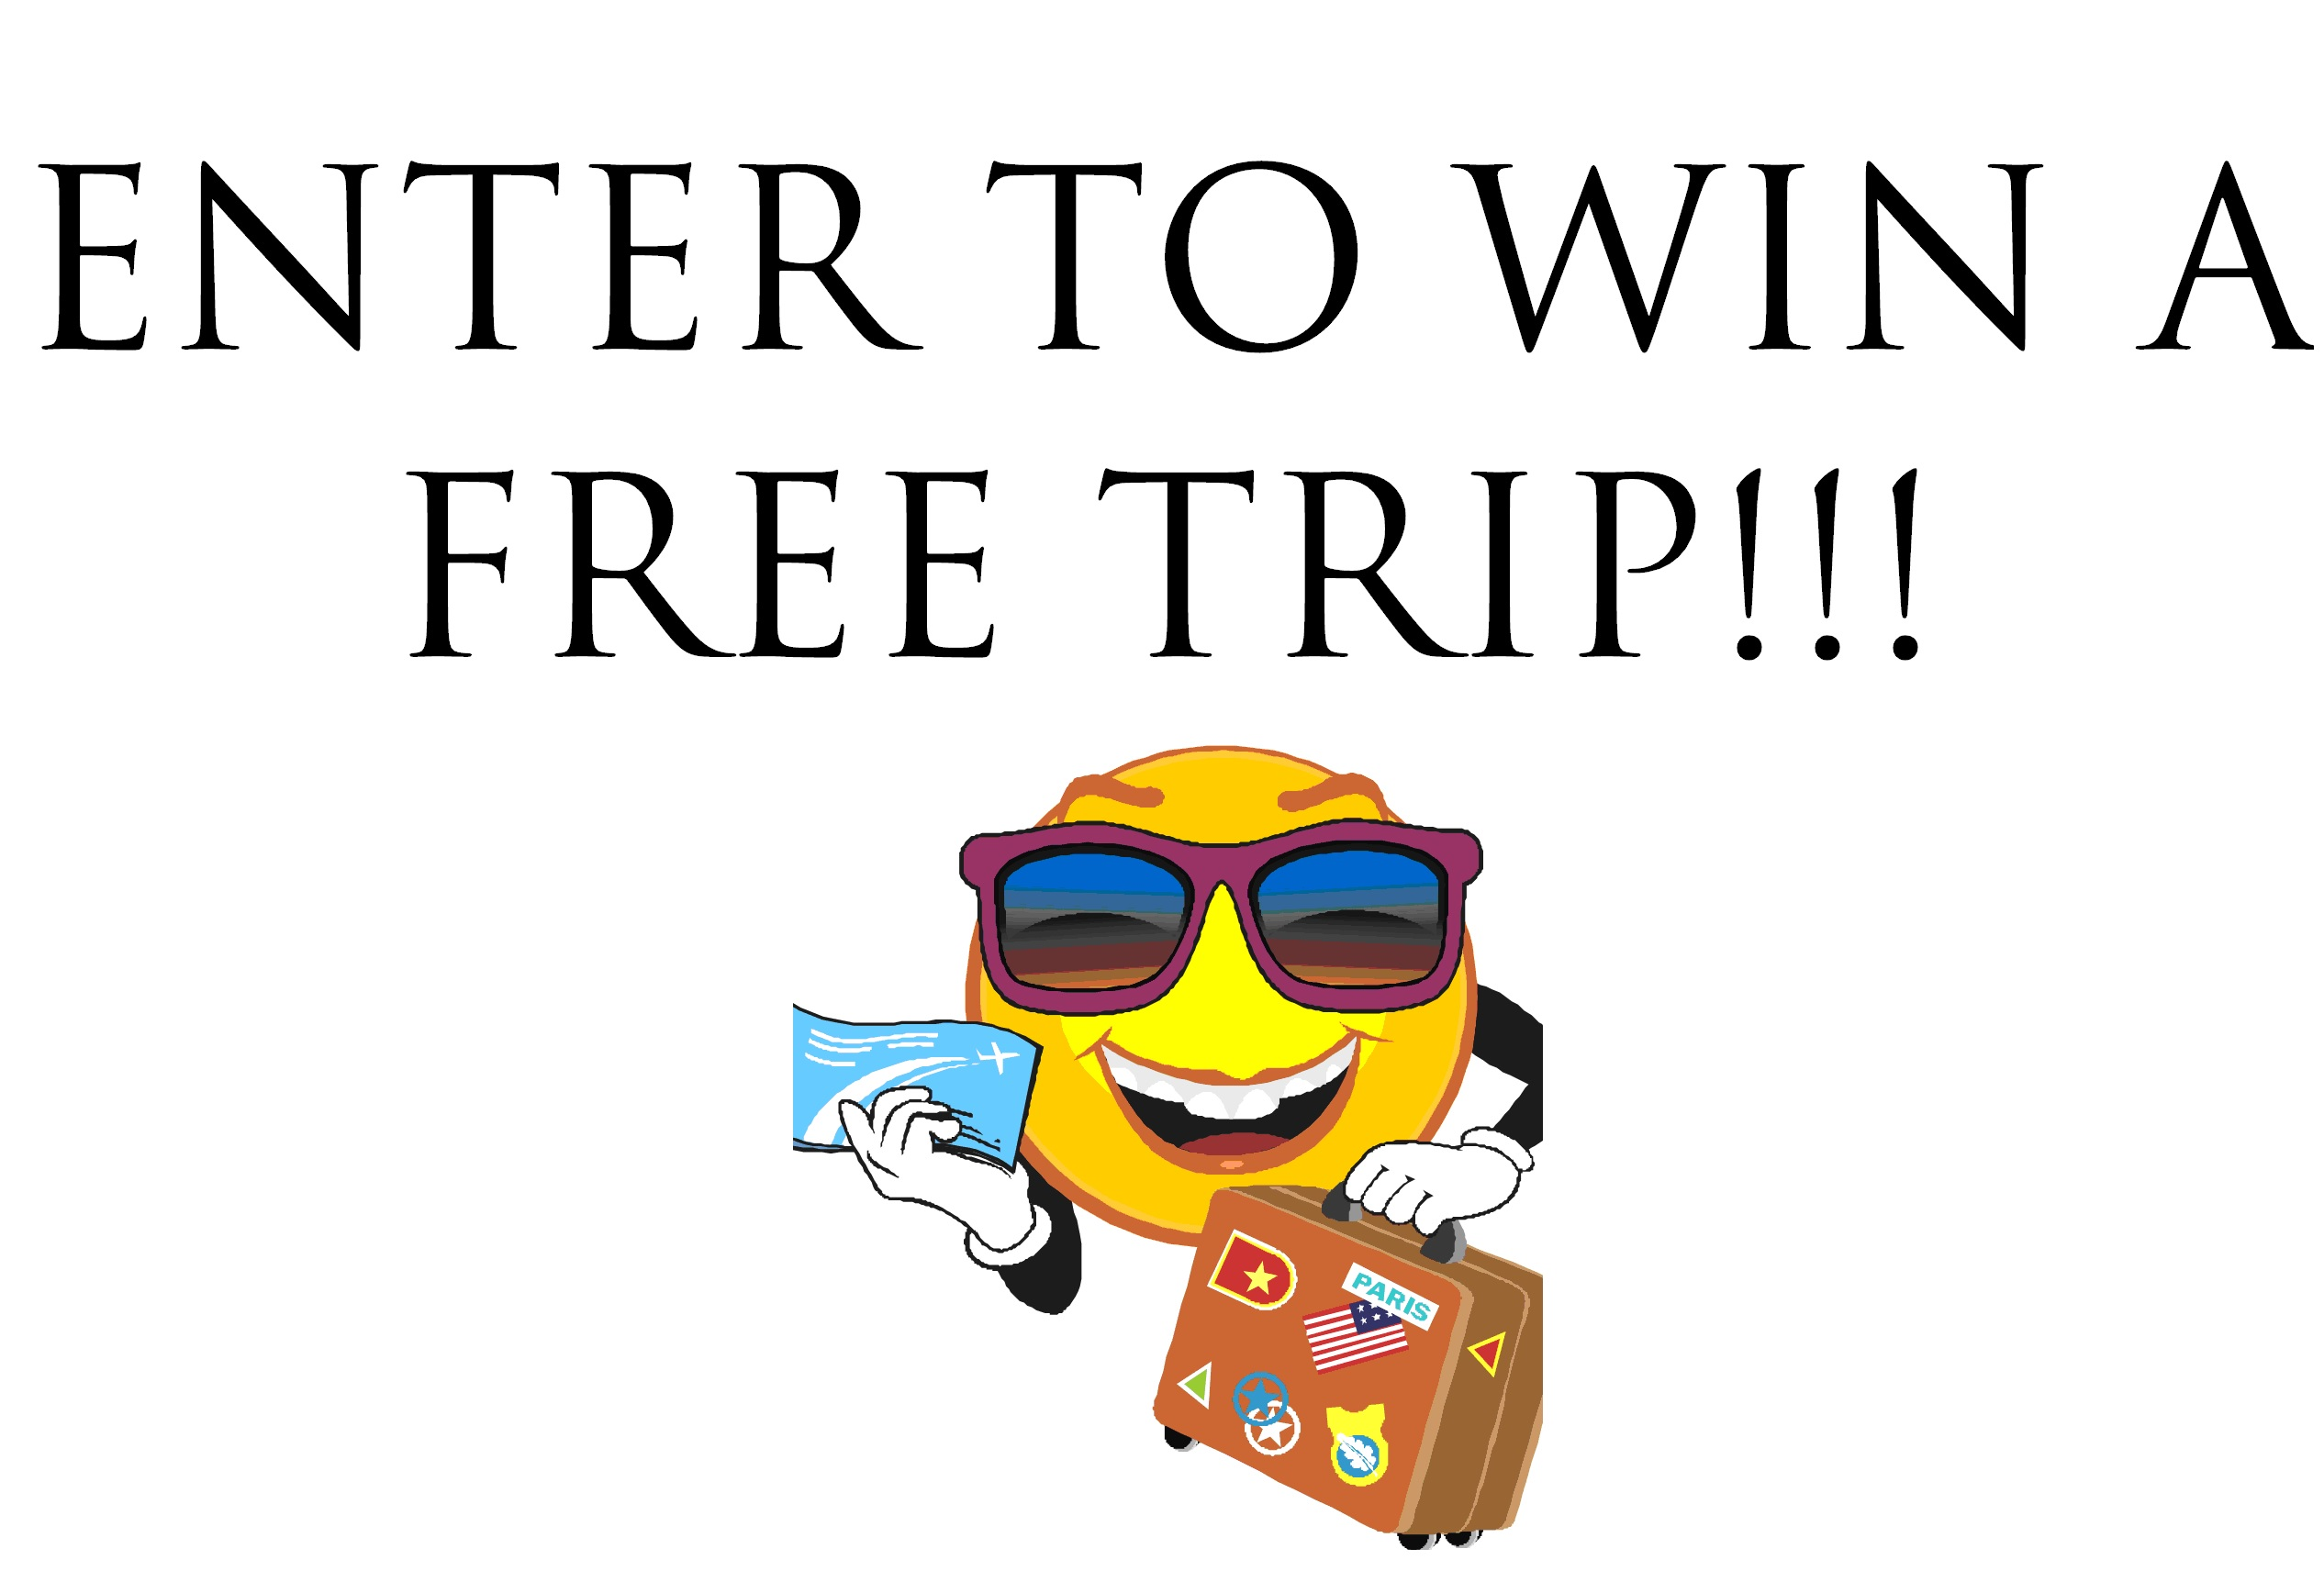 Vacation giveaway promotions